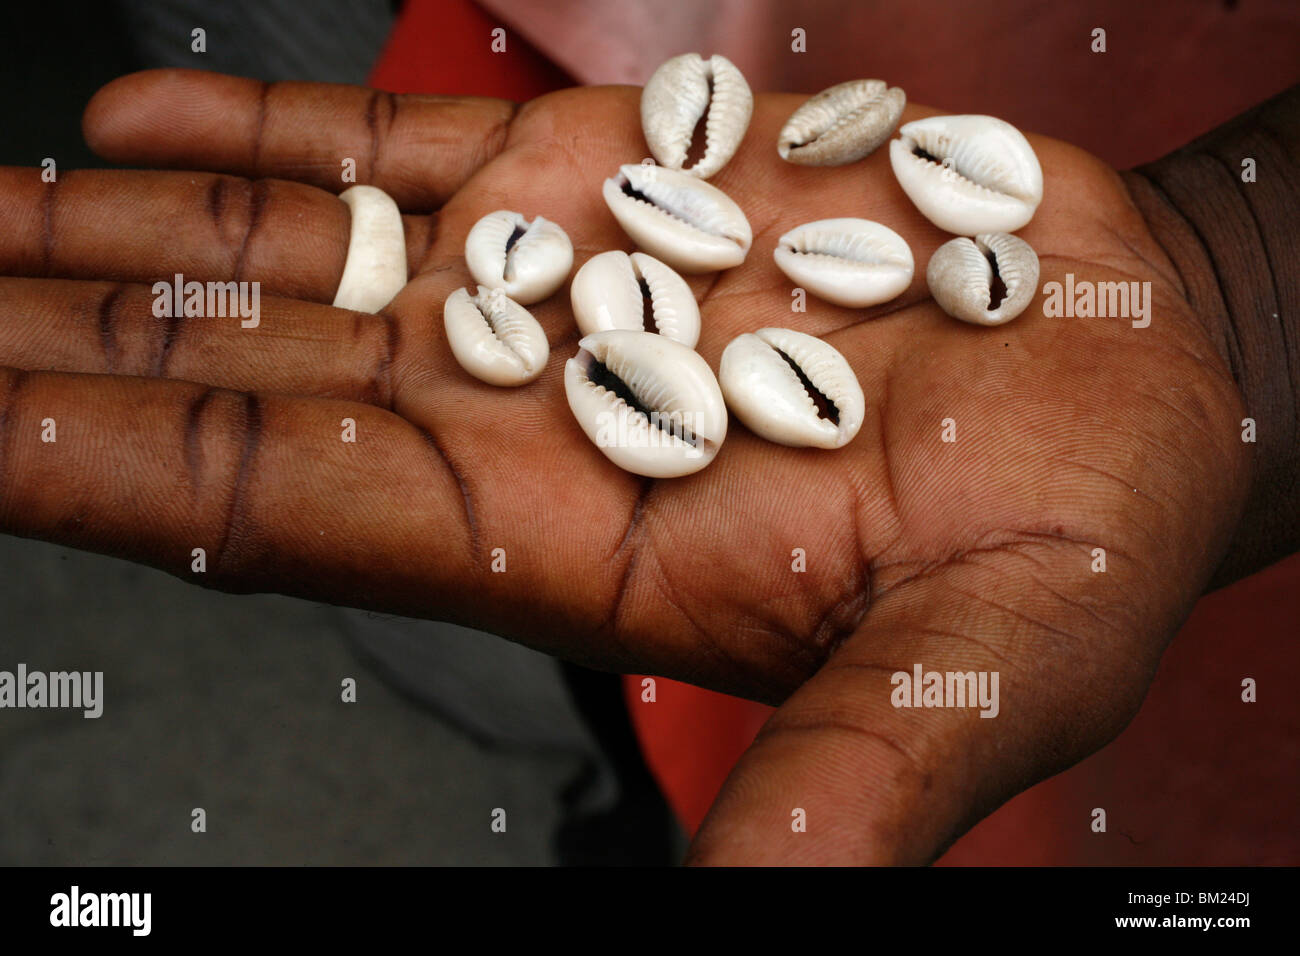 Shells used by fortune tellers, Brazzaville, Congo, Africa - Stock Image